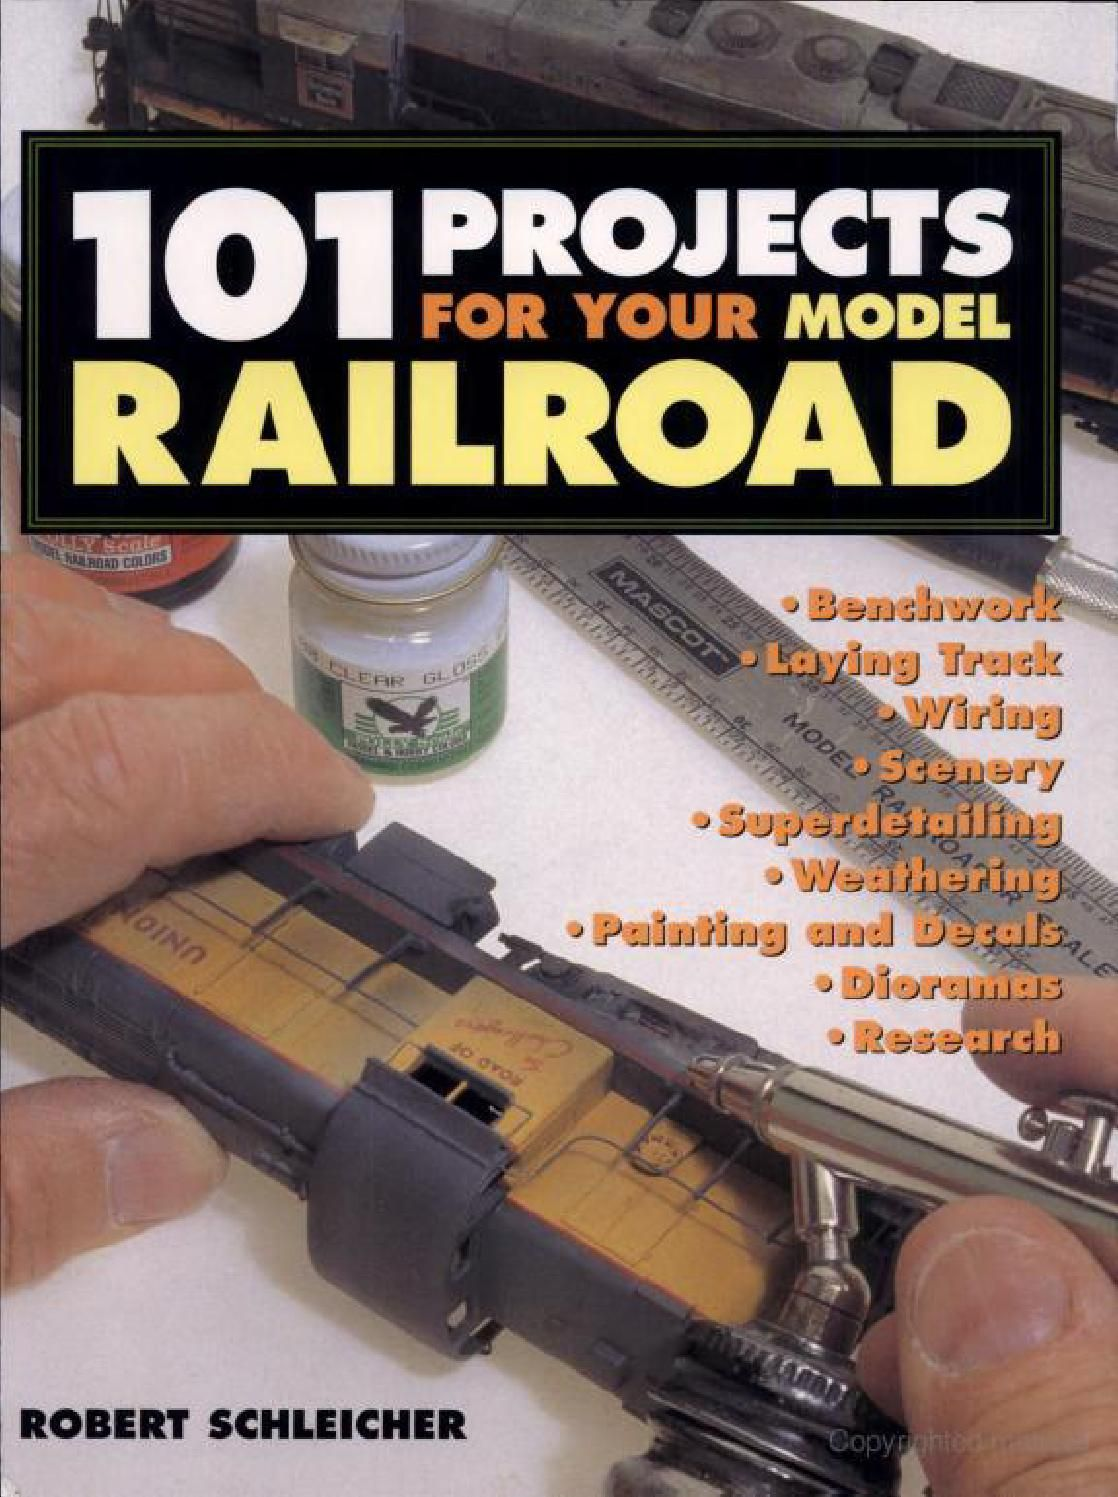 101 Project For Your Model Railroad Trainspotting Dioramas Card Wiring Track